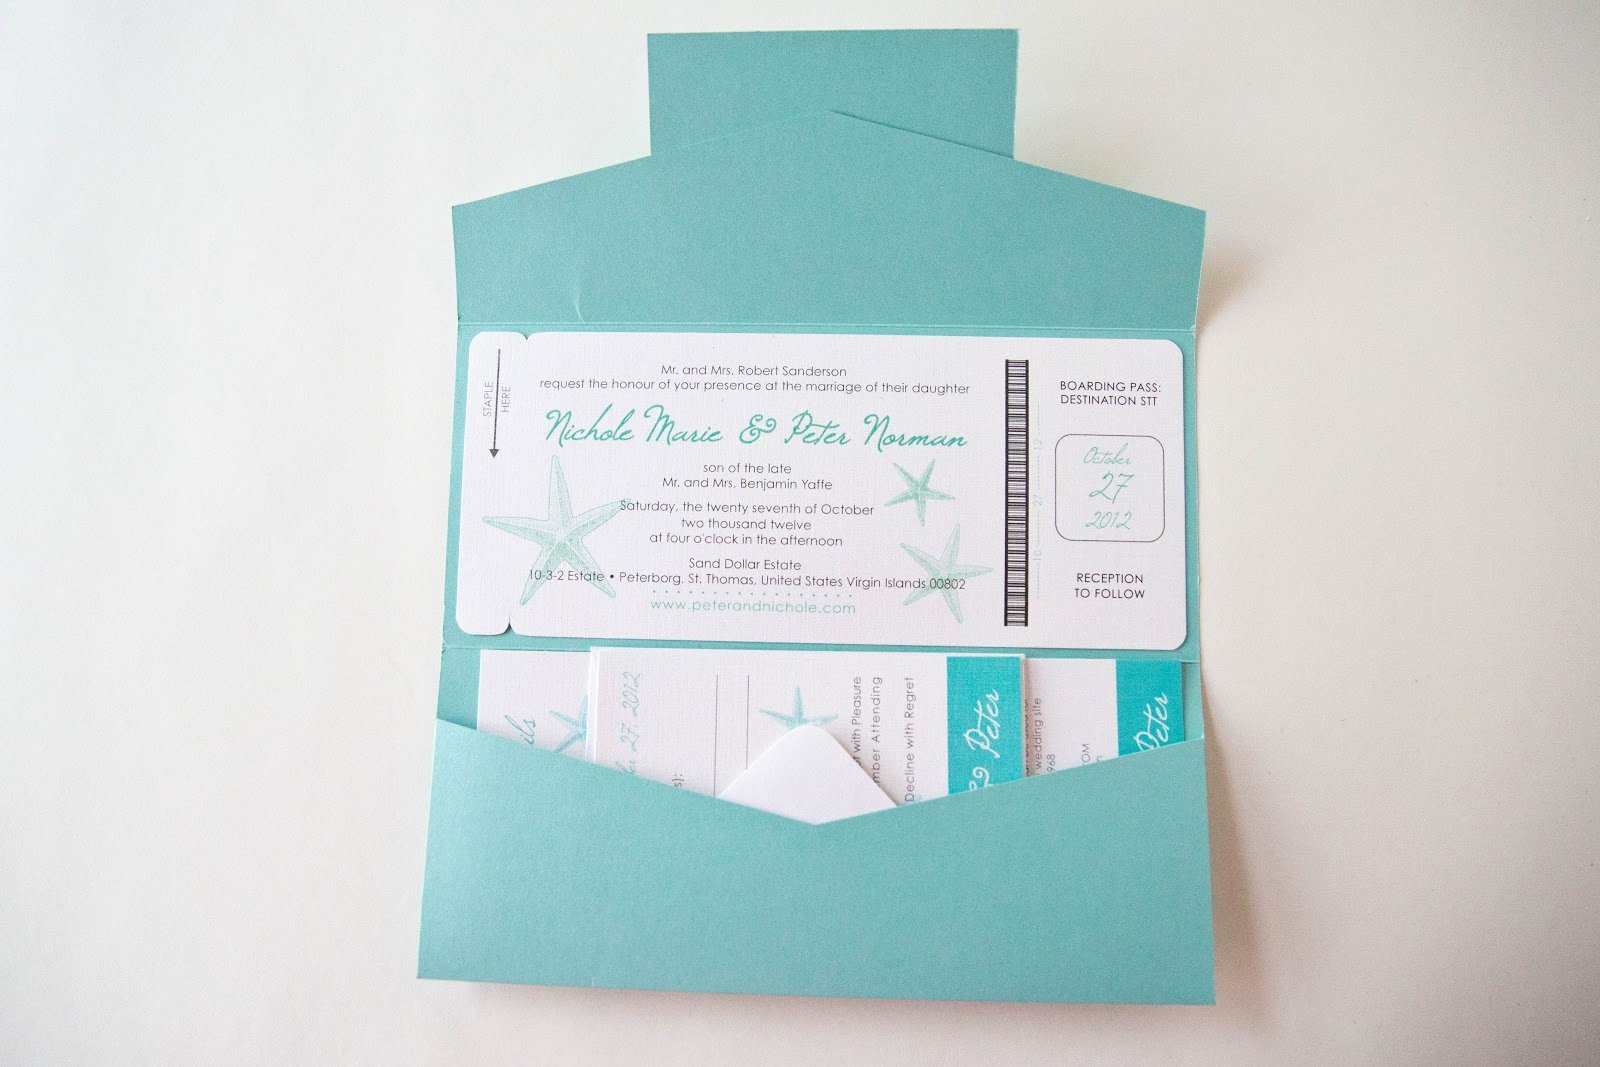 Passport Invitation Template Free Beautiful Kindly R S V P Designs Blog Passport Pocket Style